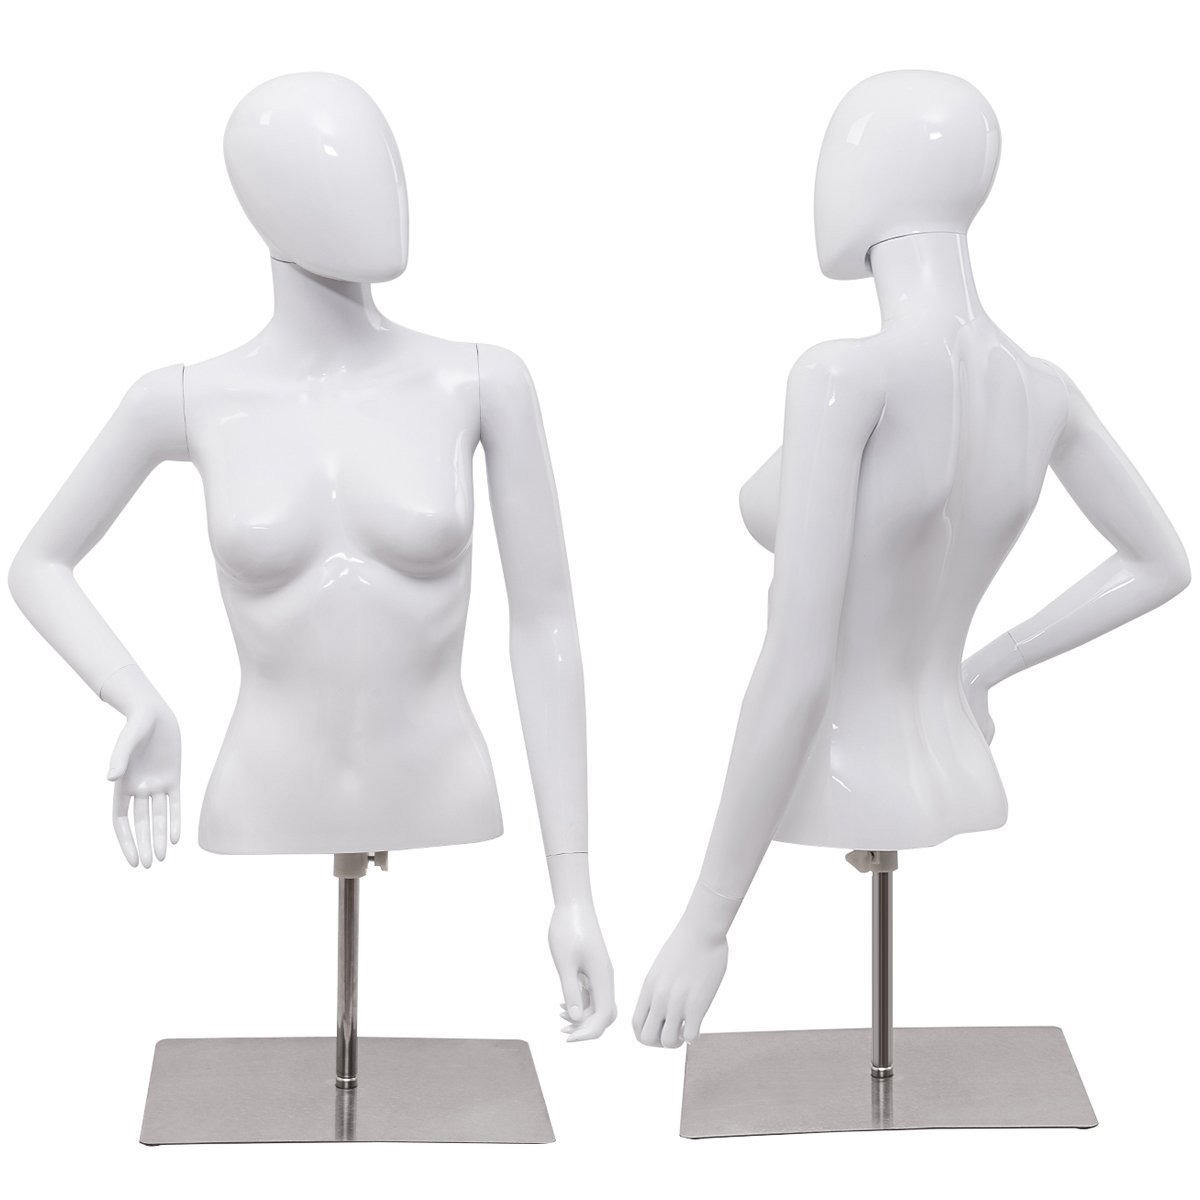 ZM-113 - Ava - White Glossy Half Body Female Mannequin Stand